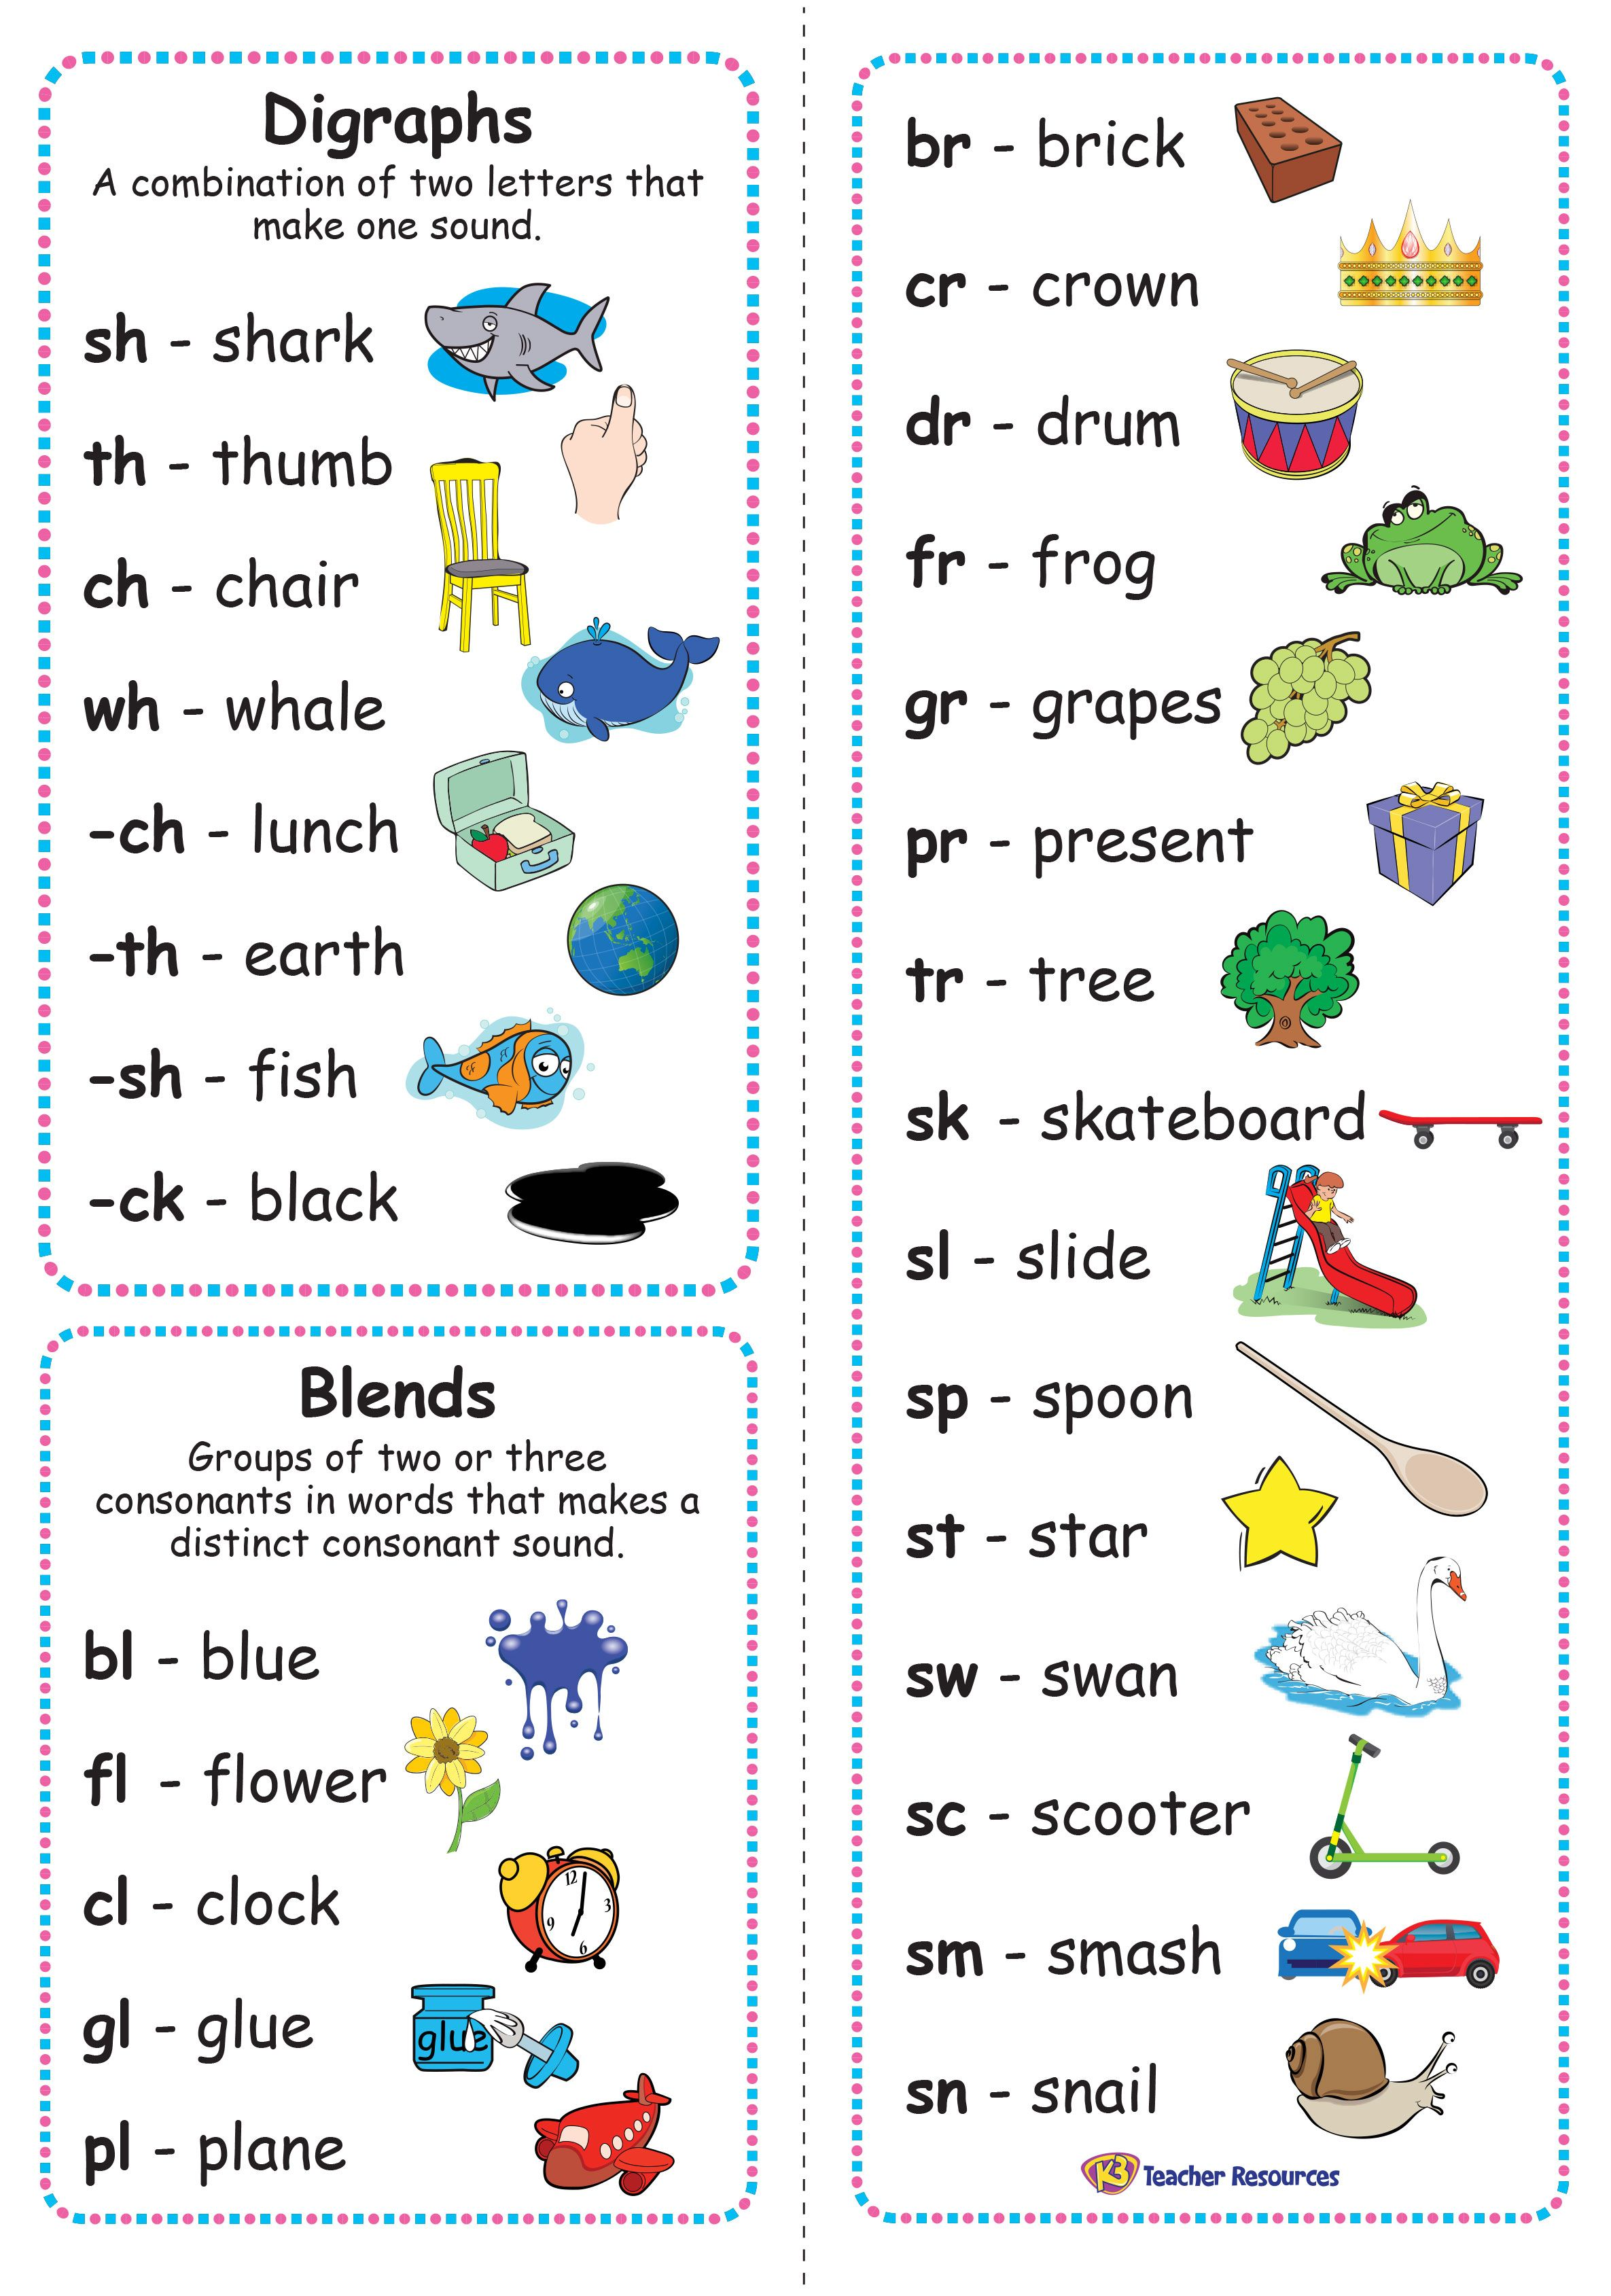 Common Digraphs And Blends Bookmark With Images